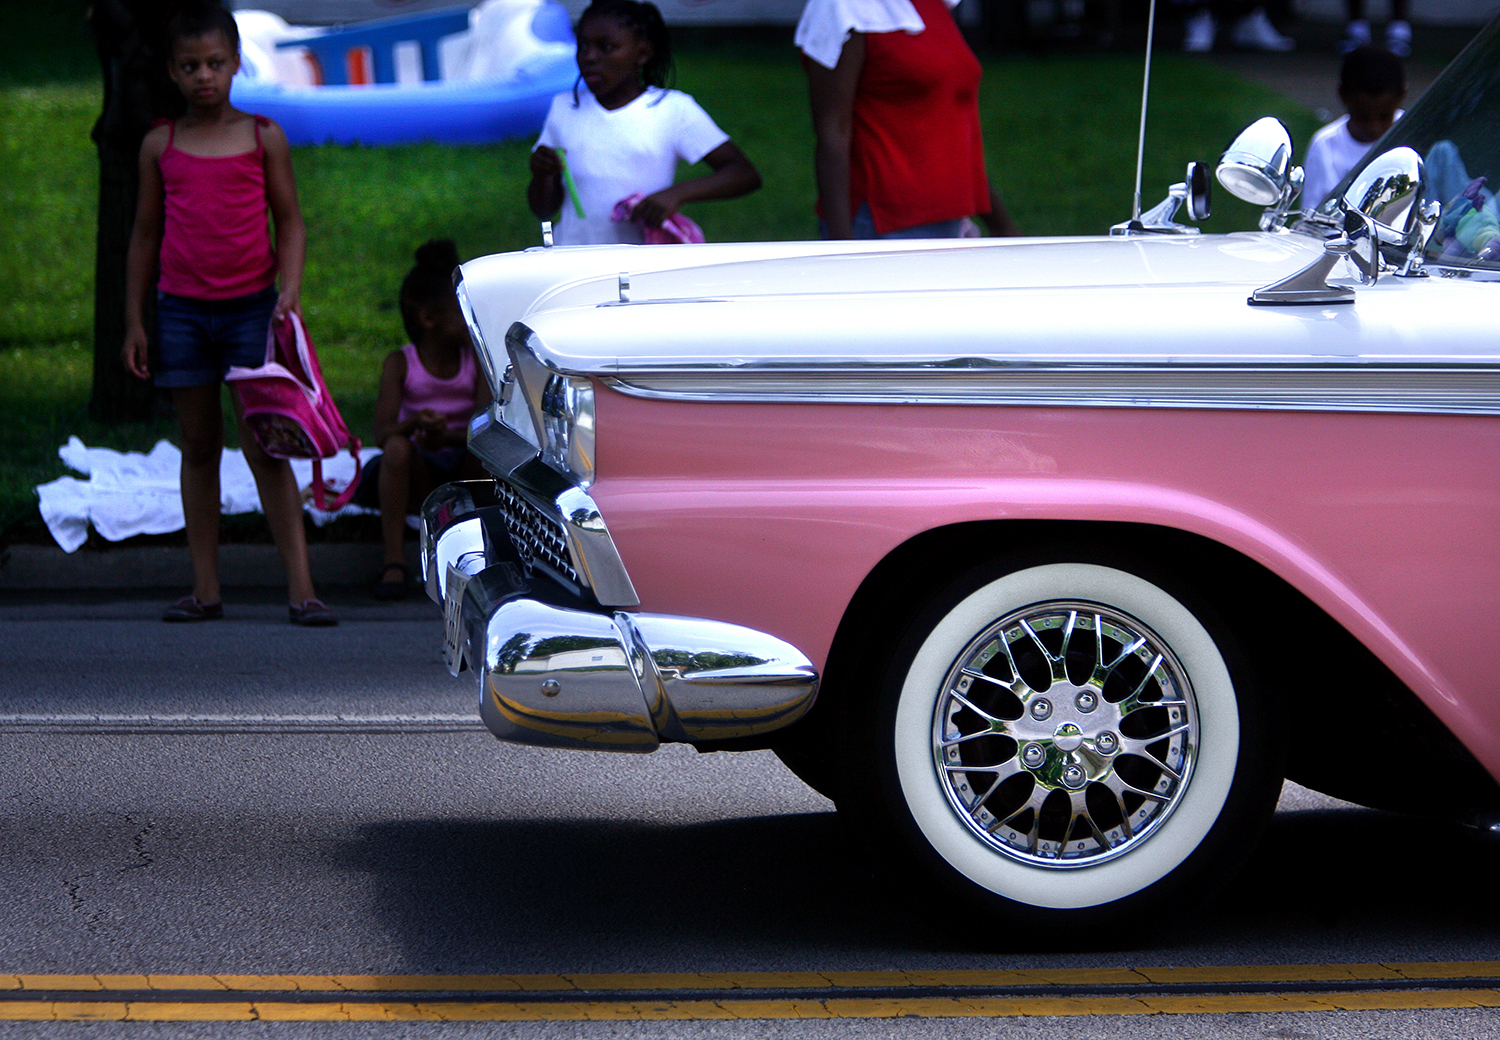 Springfield's 16th annual Juneteenth Celebration kicked off Saturday with a parade winding north on Martin Luther King Jr. Drive and ending at Comer Cox Park. Dating to 1865, Juneteenth commemorates the ending of slavery in the United States. David Spencer/The State Journal-Register